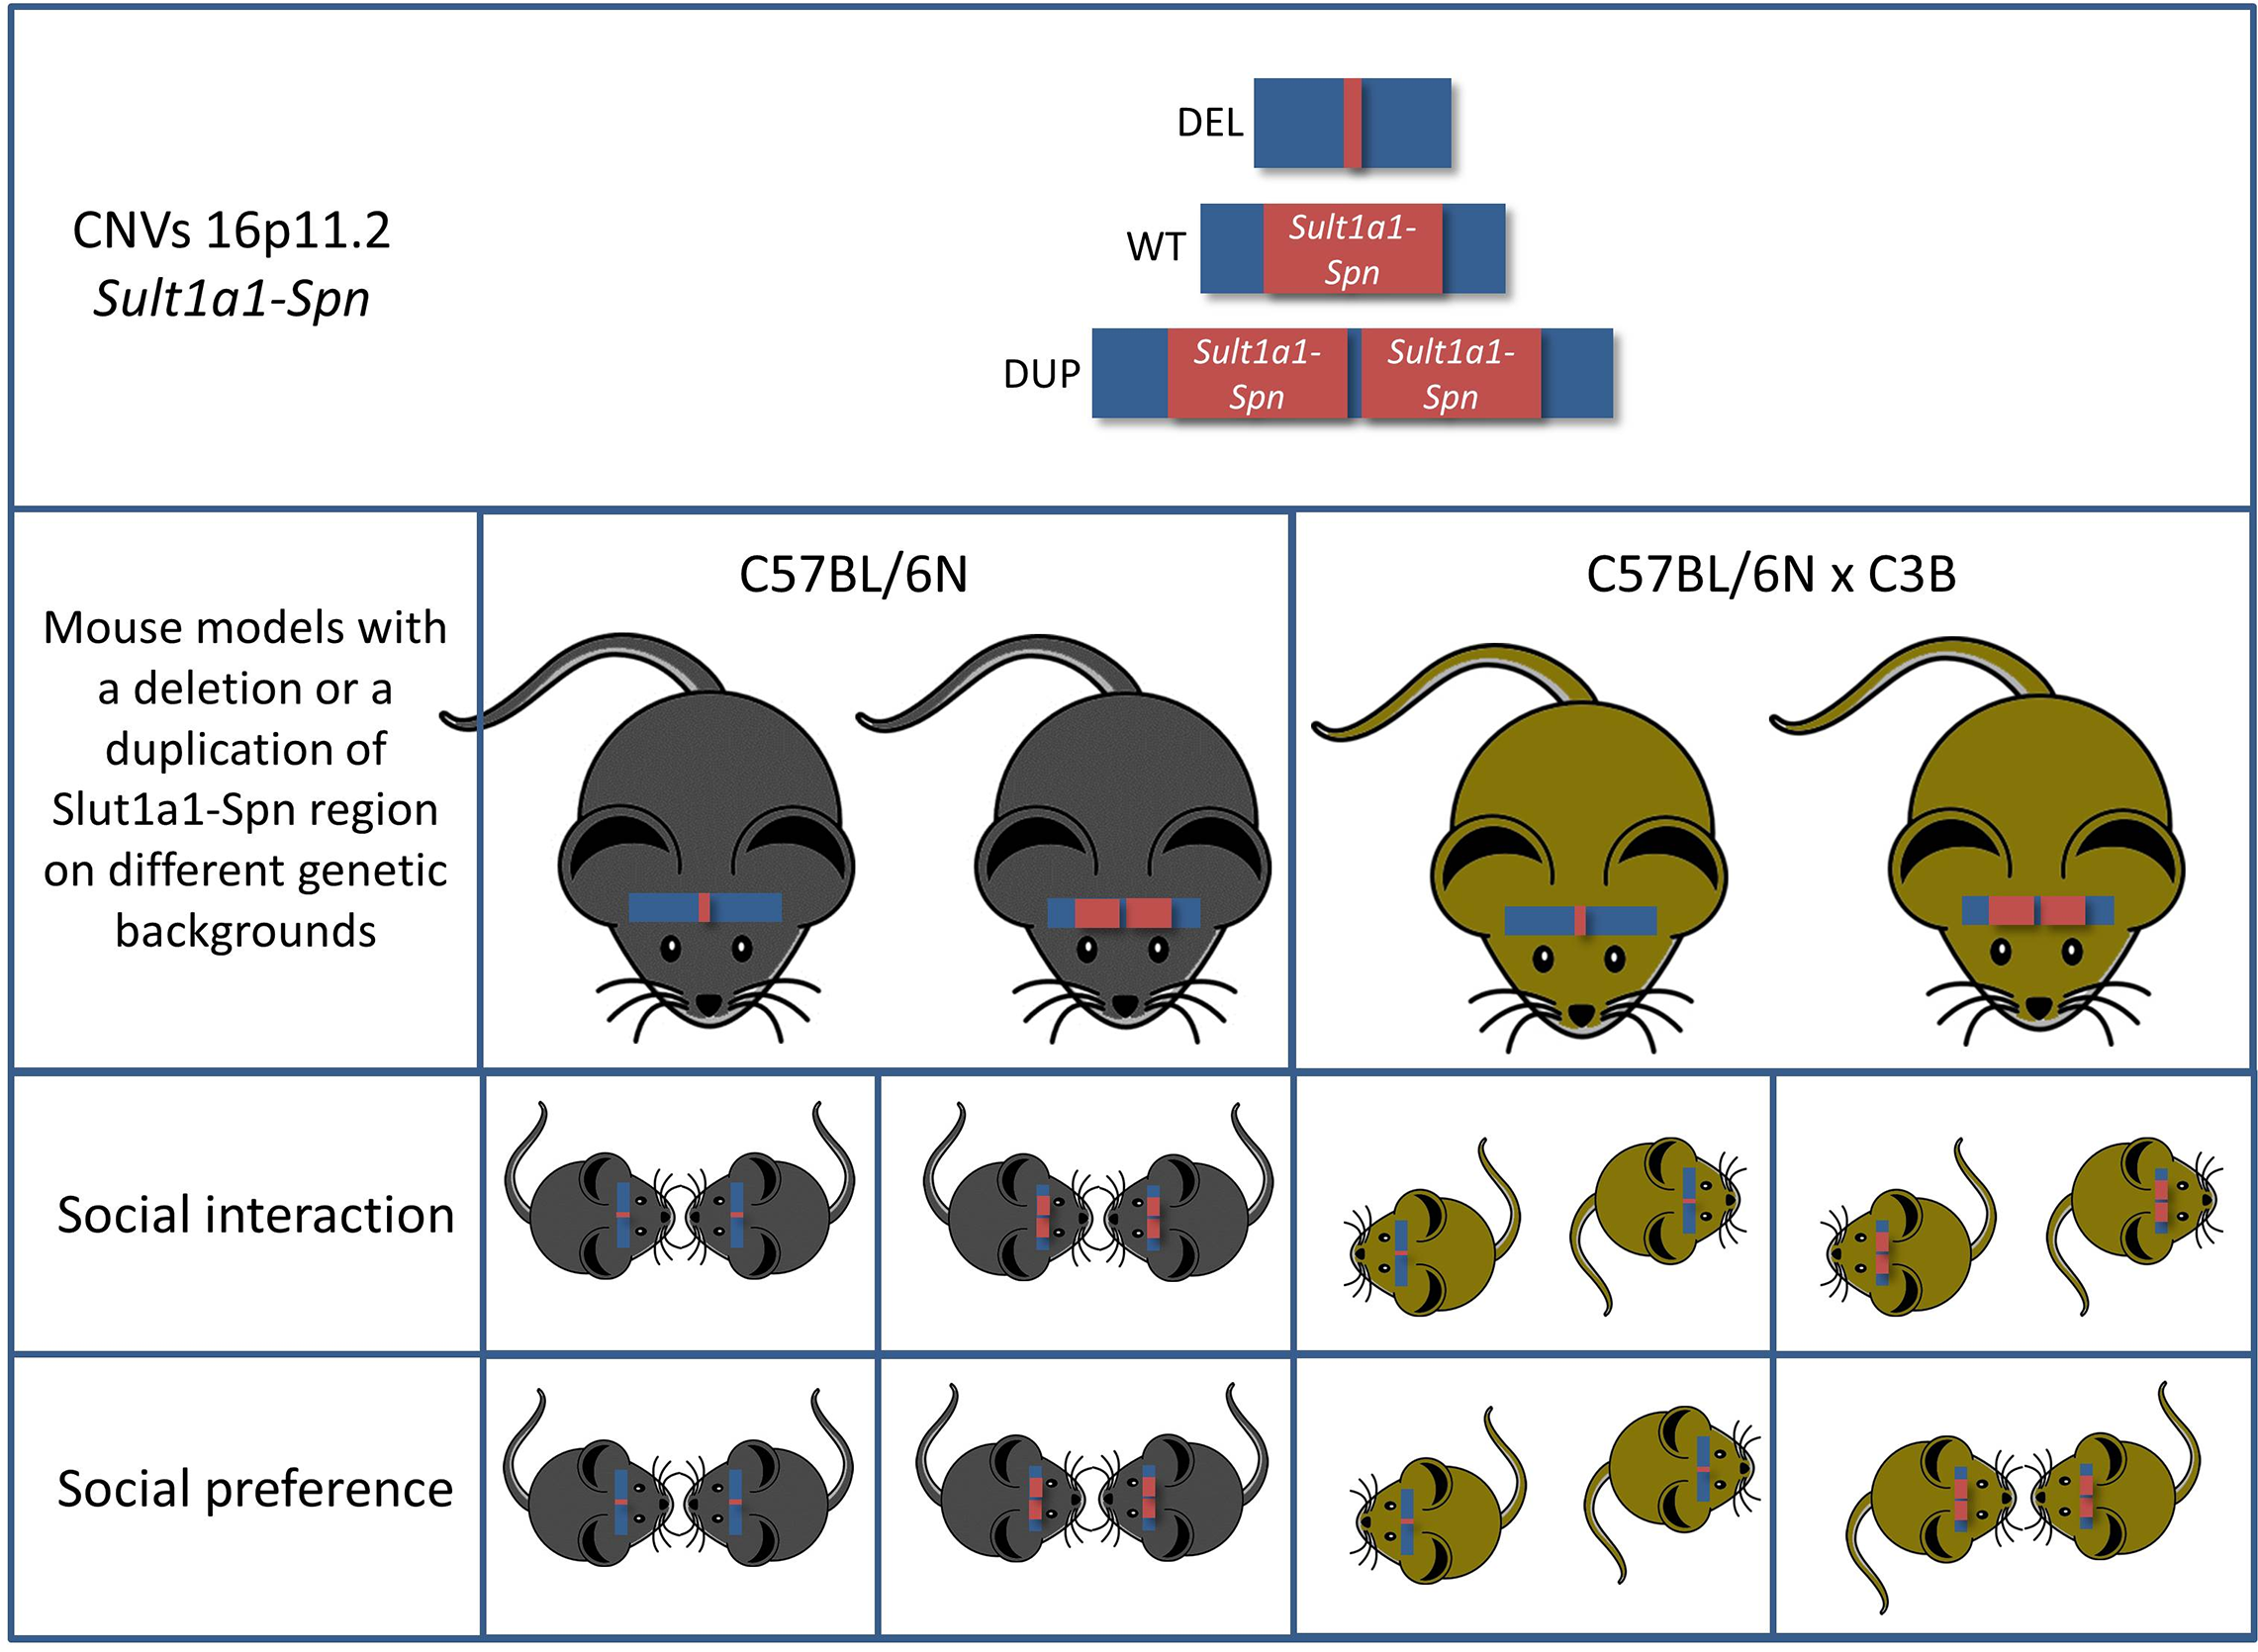 Mice carrying a deletion syntenic to the human chromosome 16p11.2 (Sult1a1-Spn) exhibit multiple behavioral phenotypes associated with ASD.